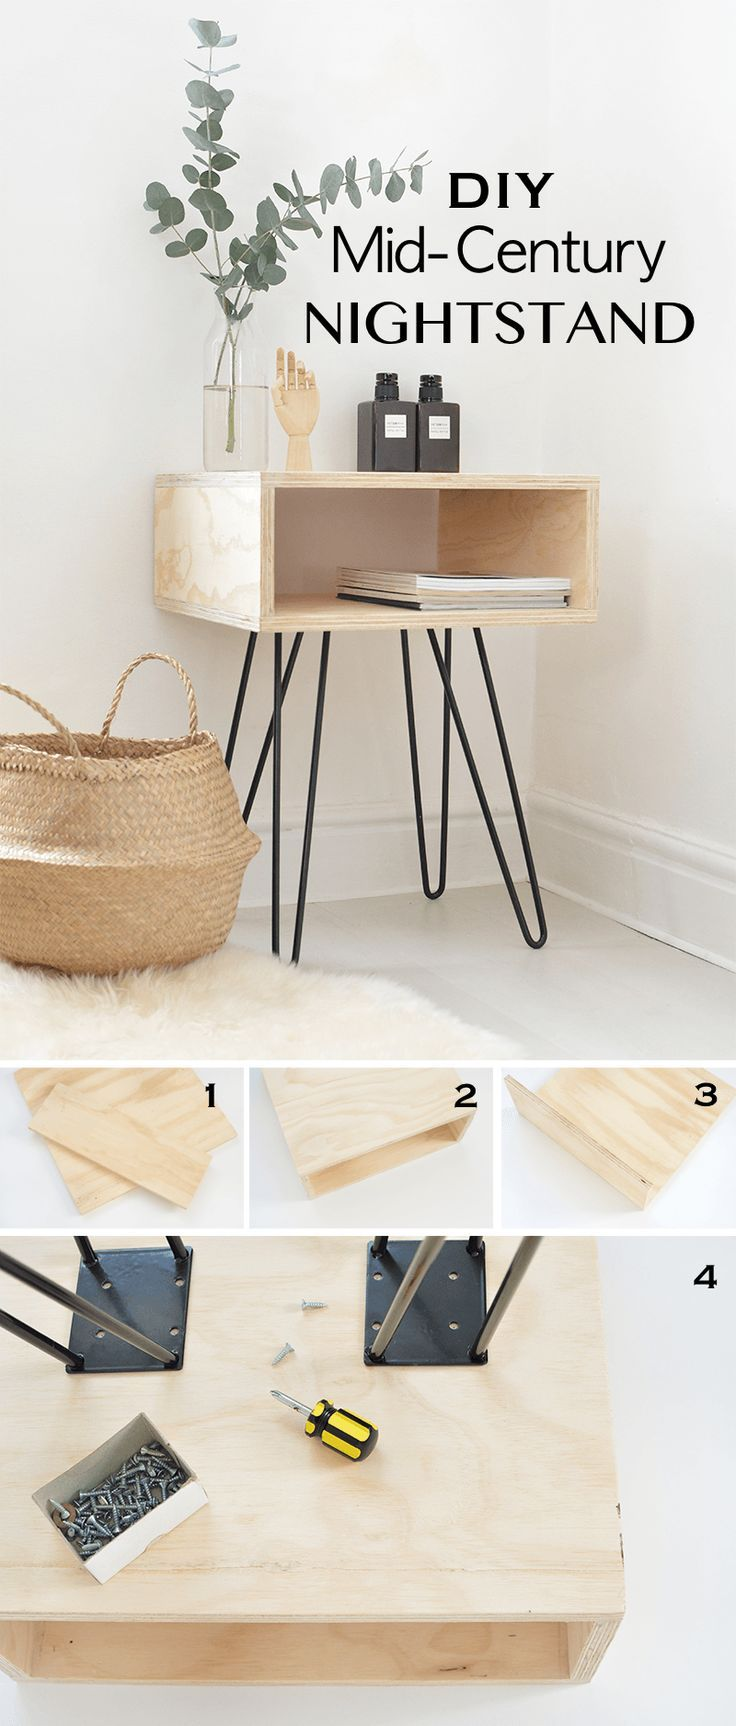 15 Simple DIY Tables That You Can Build Yourself - Living Room - #Building #Di ...